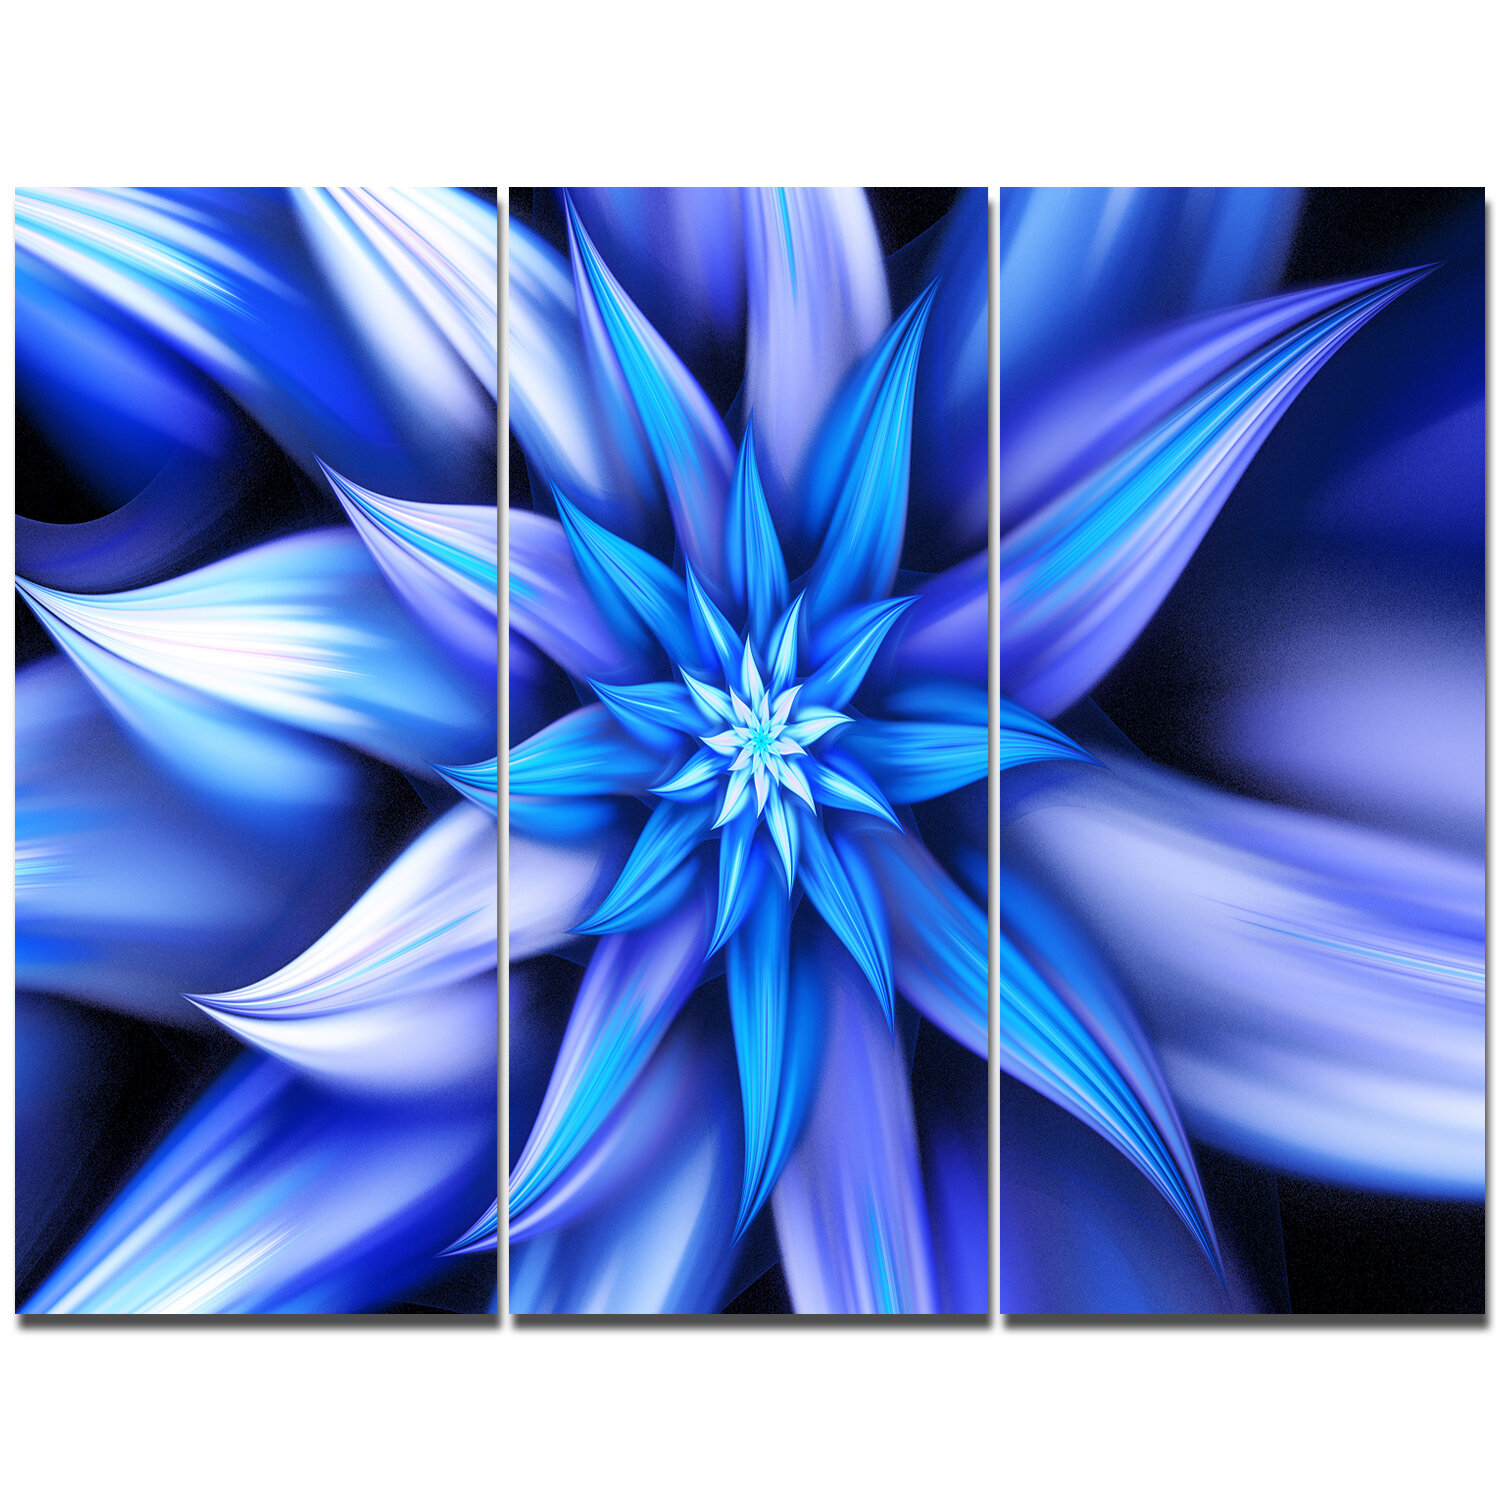 Designart dancing blue flower petals graphic art print multi piece designart dancing blue flower petals graphic art print multi piece image on canvas wayfair izmirmasajfo